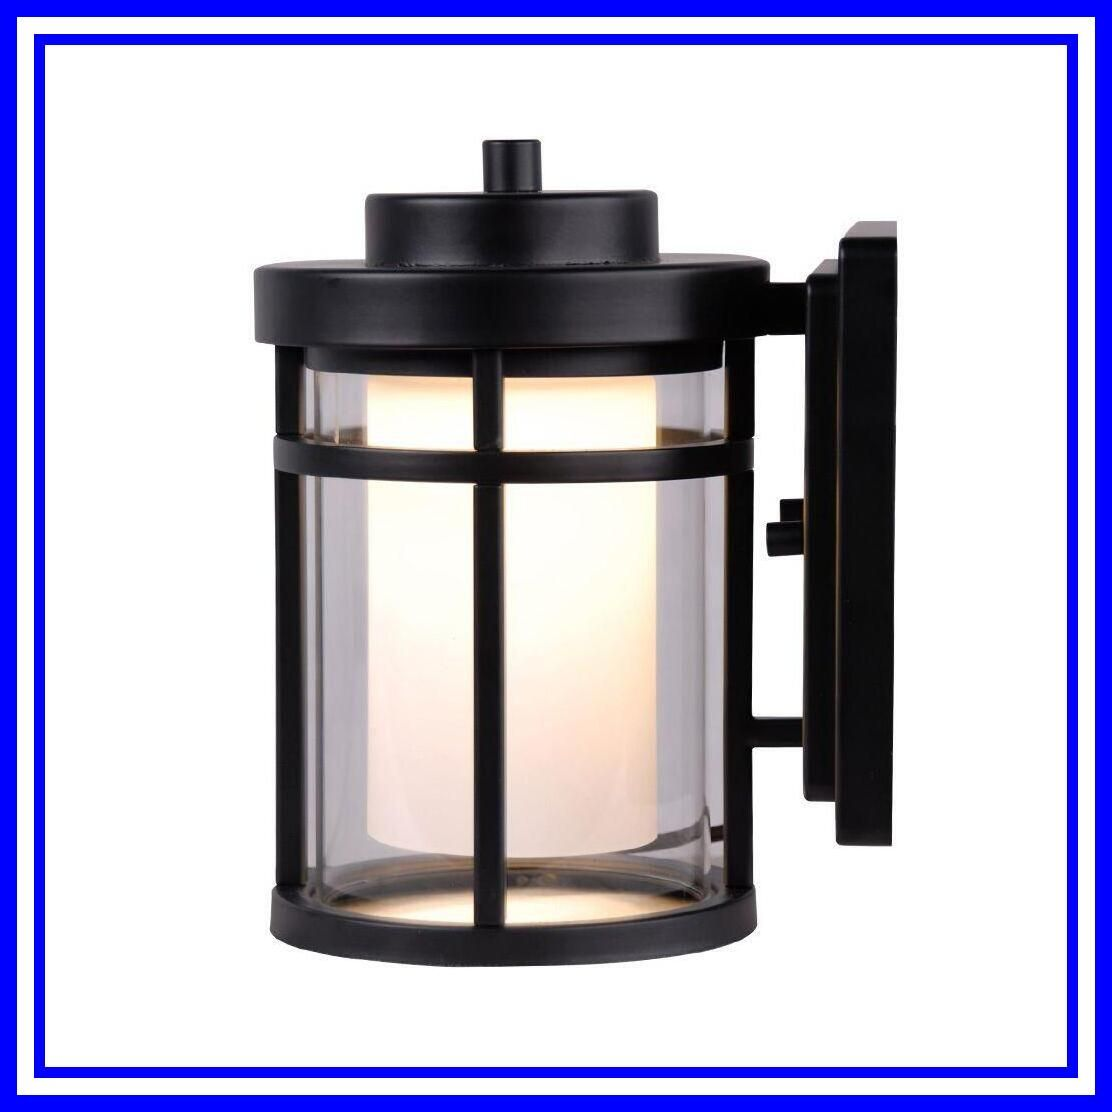 78 Reference Of Wall Lamps Home Depot In 2020 Small Wall Lights Wall Lights Exterior Light Fixtures